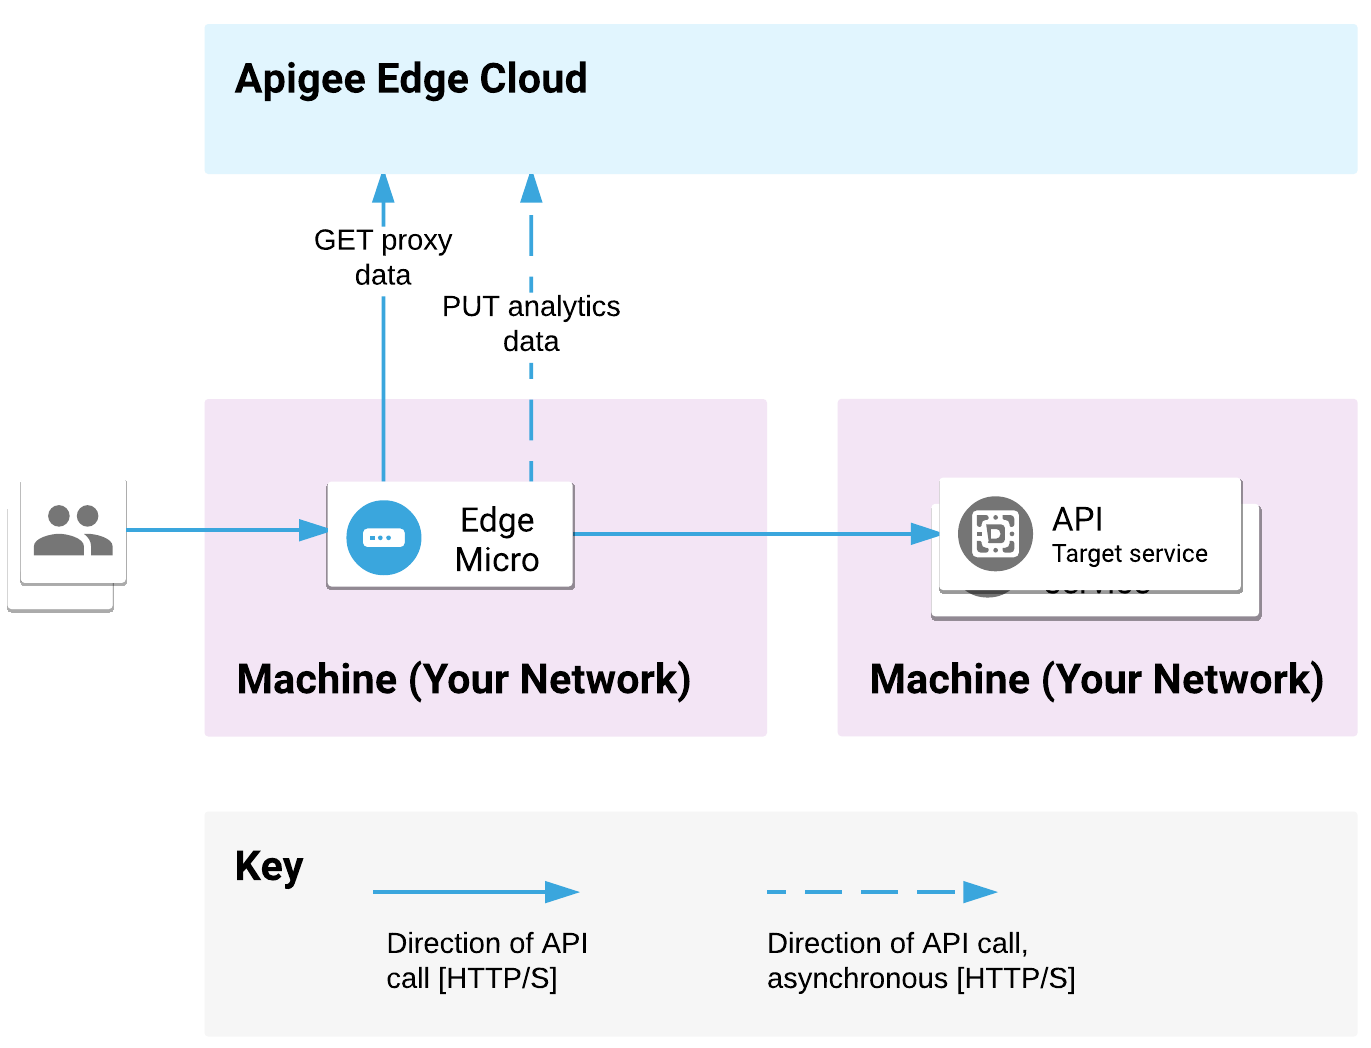 Edge Microgateway is depoyed on one machine, and backend services are              deployed in another location. API requests are processed by the microgateway              and requests are sent backend targets. Microgateway communicates proxy and              analytics data with Apigee Edge Cloud.